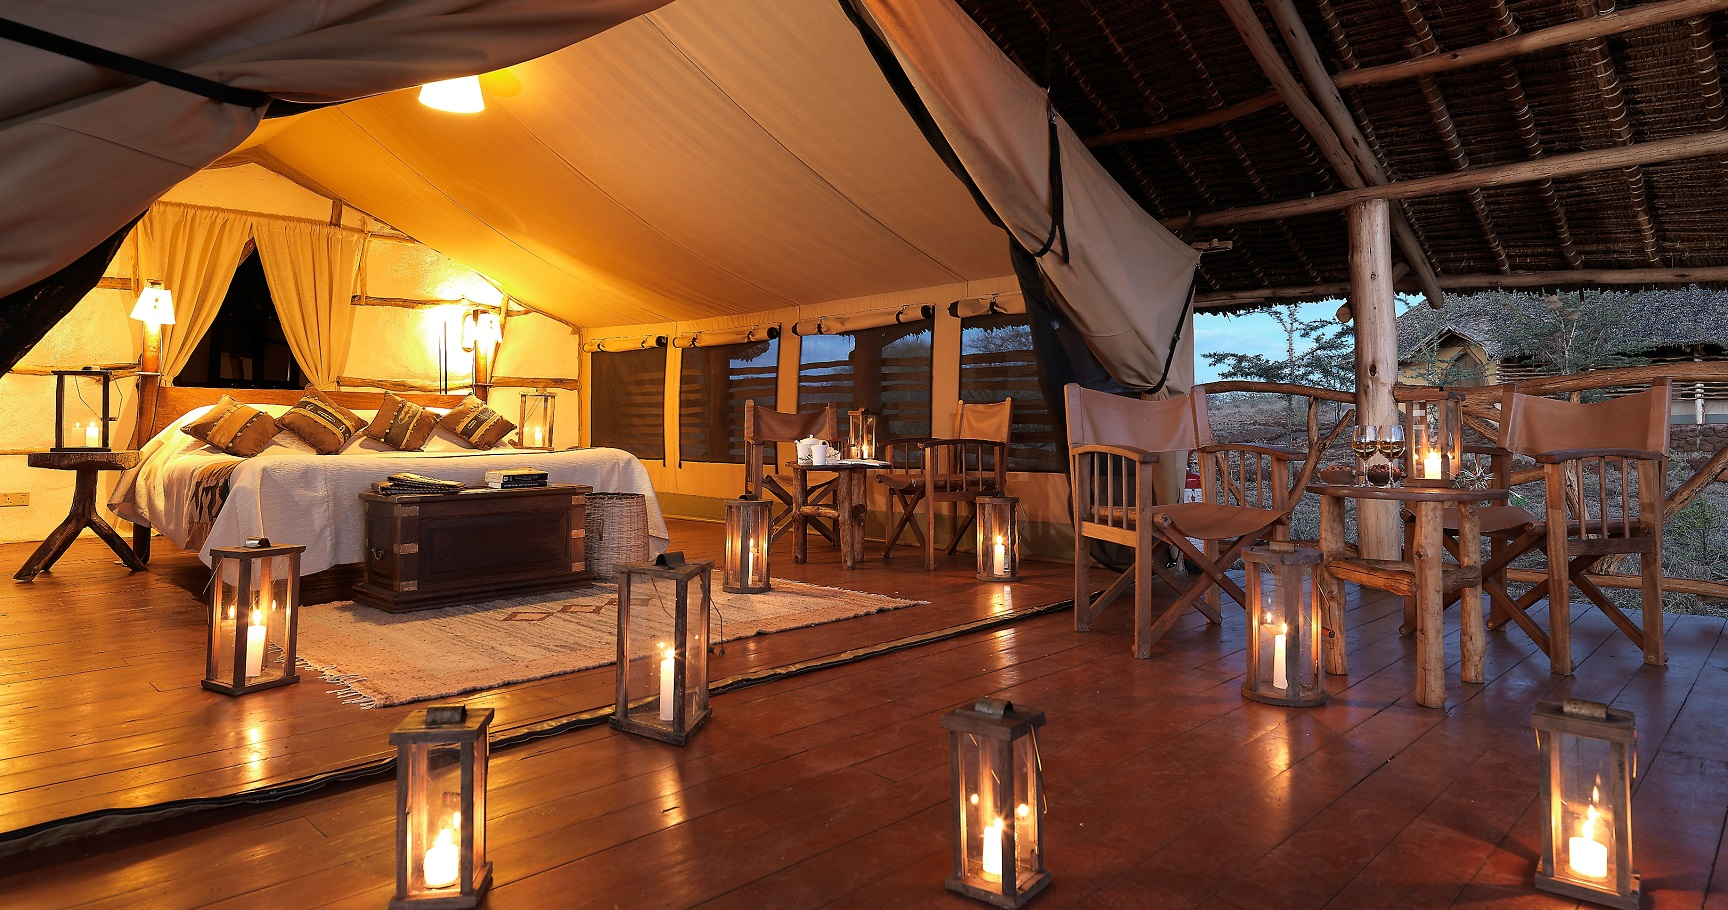 10 Of The Most Expensive Campgrounds In The World